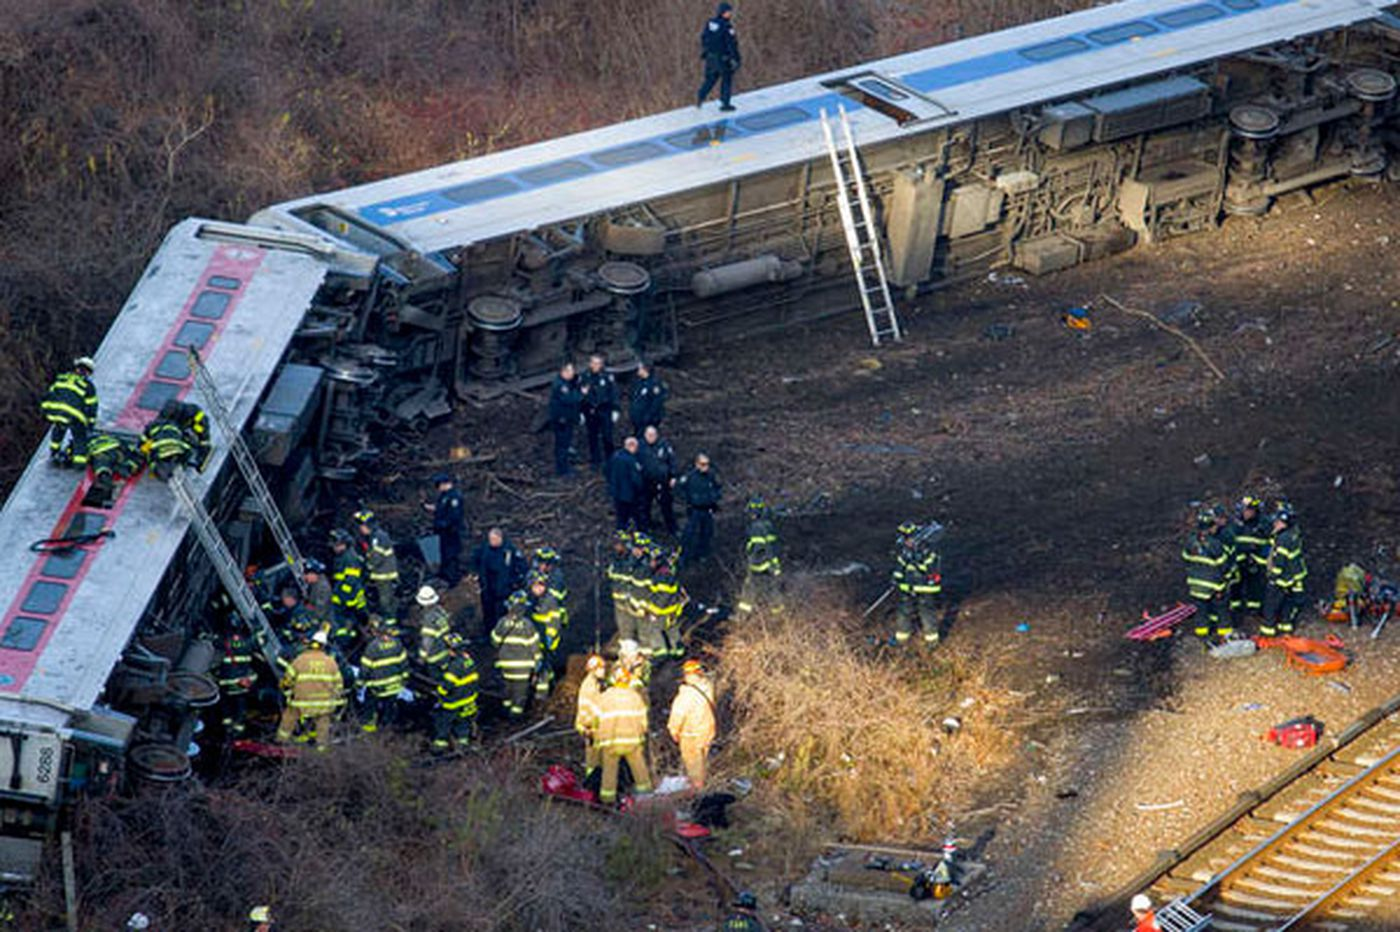 SEPTA official: Bronx-like derailment 'not a likely scenario' here